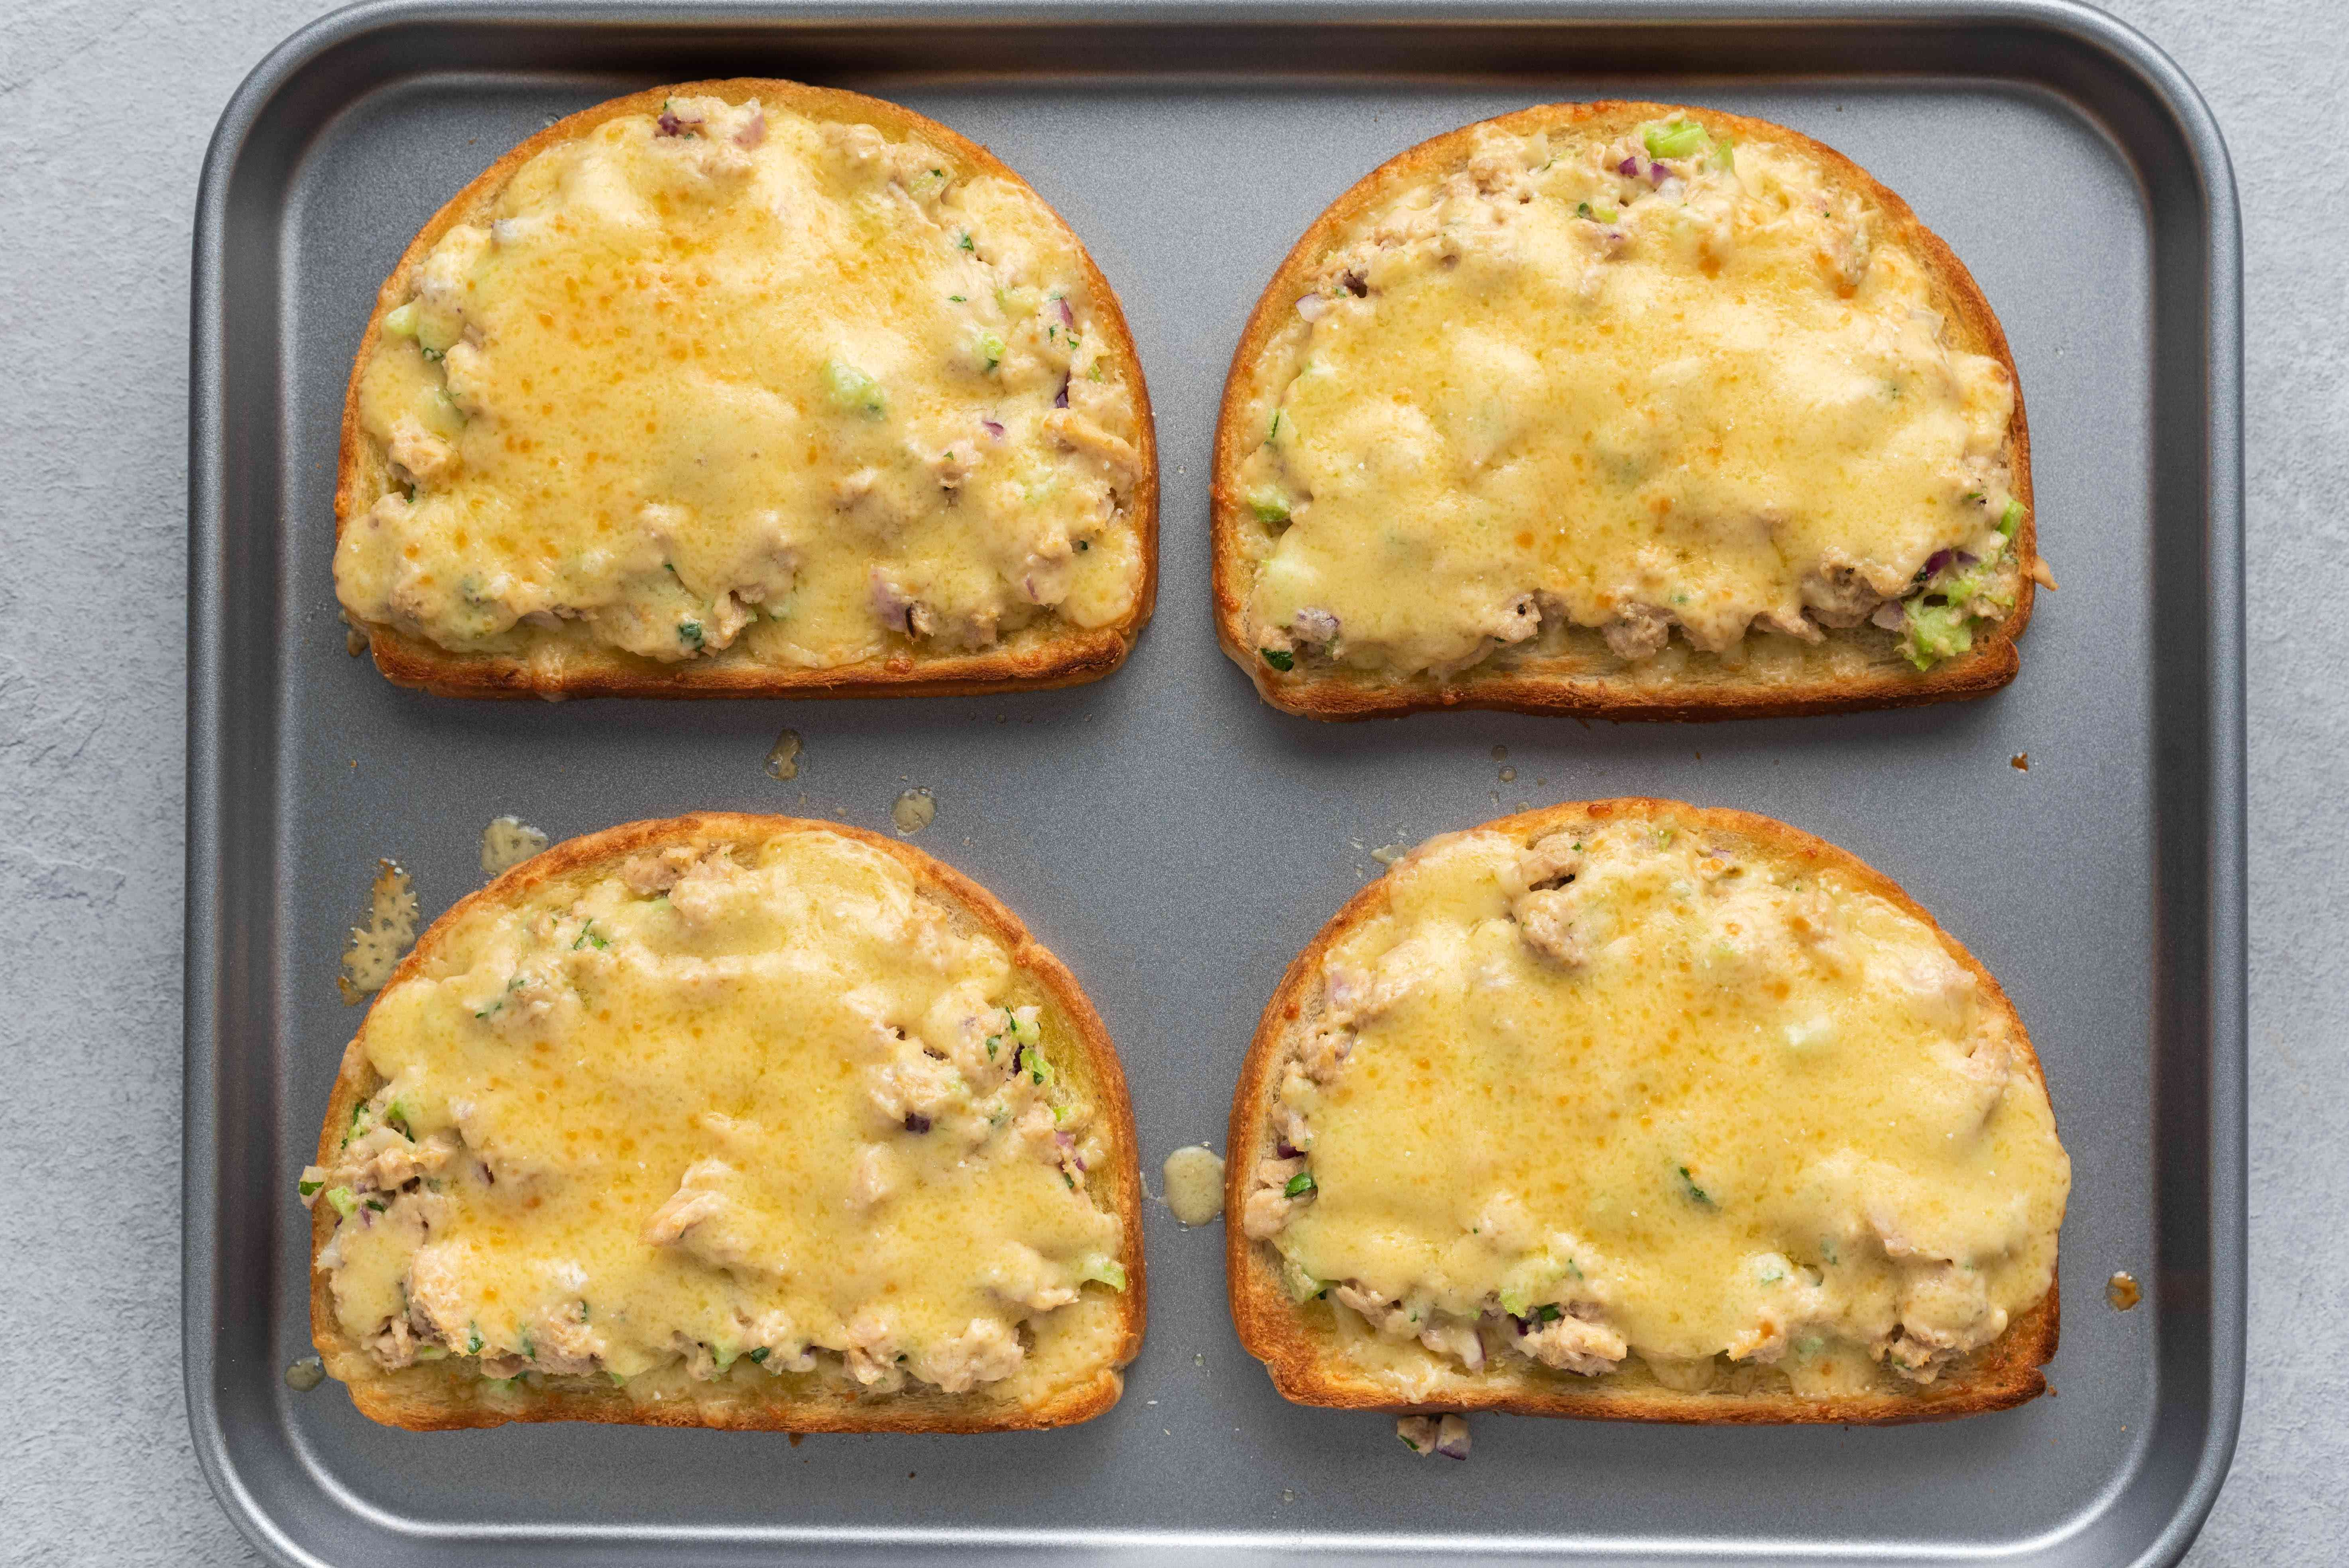 bread slices with tuna salad and melted cheese on top